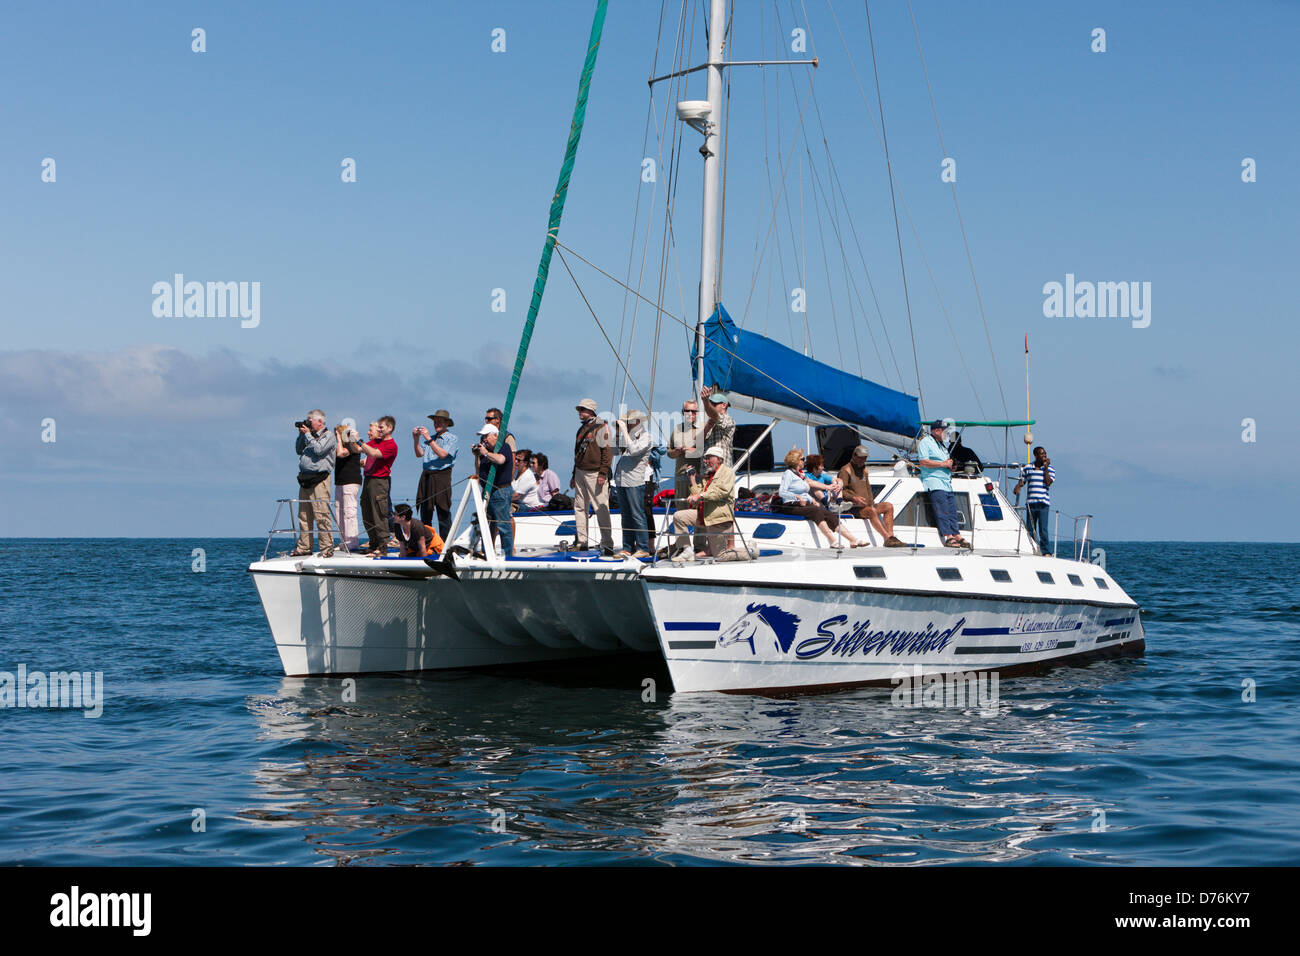 Tourists during Dolphin watching tour, Walvis Bay, Namibia - Stock Image